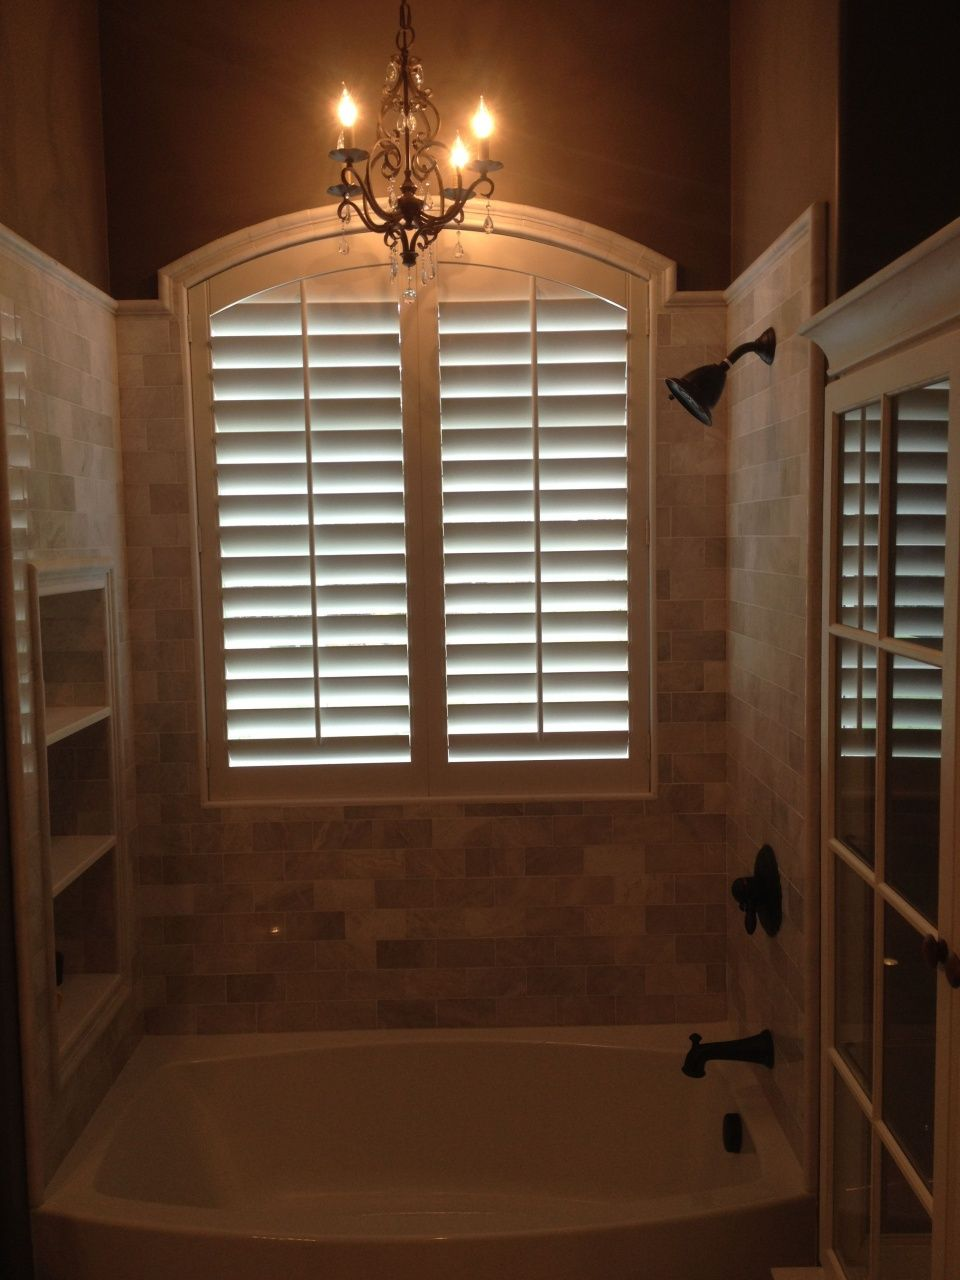 Blinds for arched top windows in 2020 blinds for arched